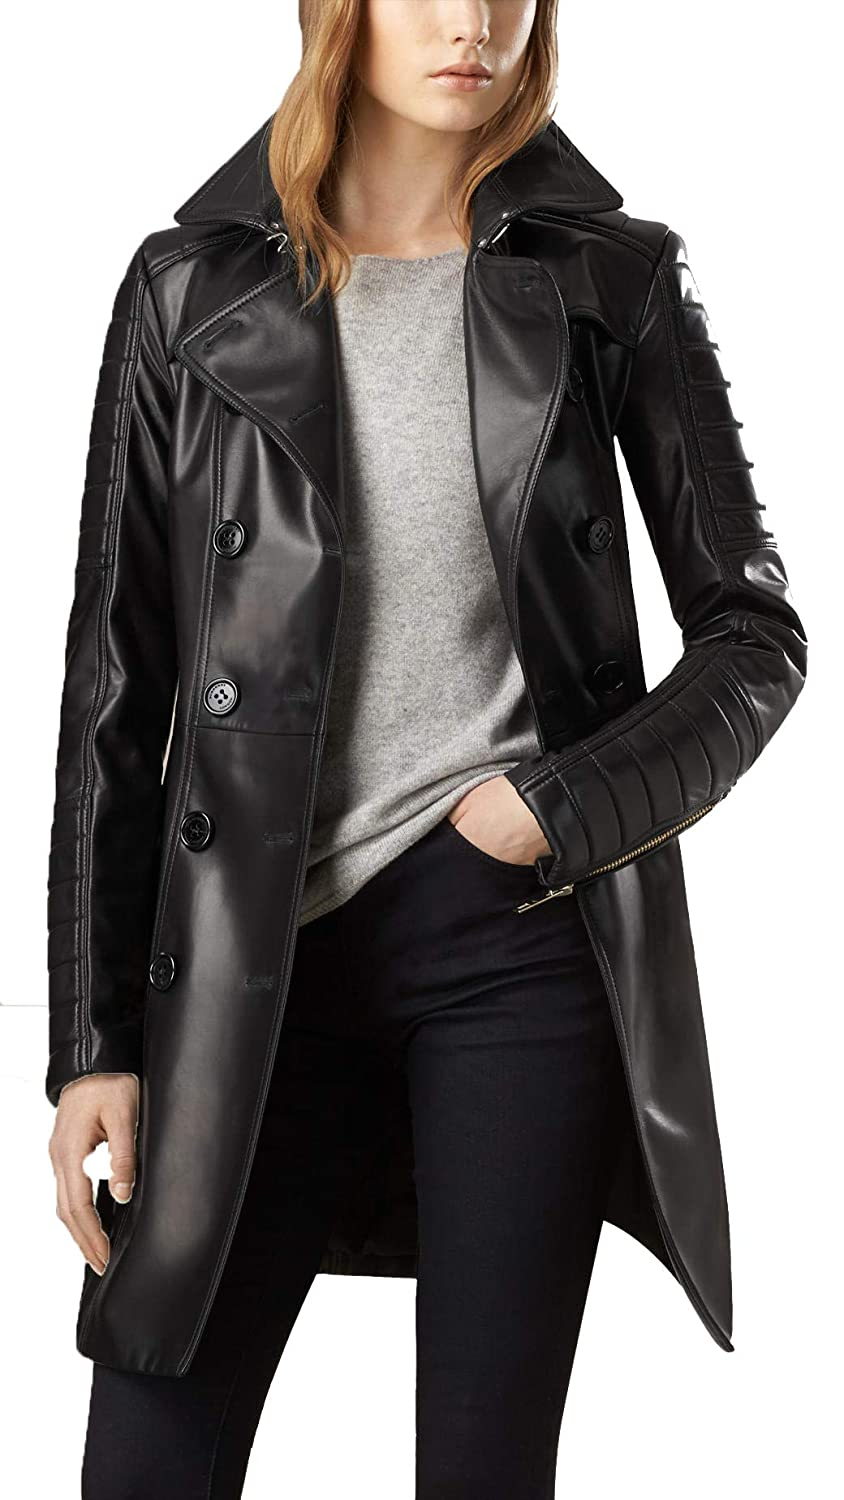 Leather Lust Women's Double Breasted Leather Trench Coat with Belt Black